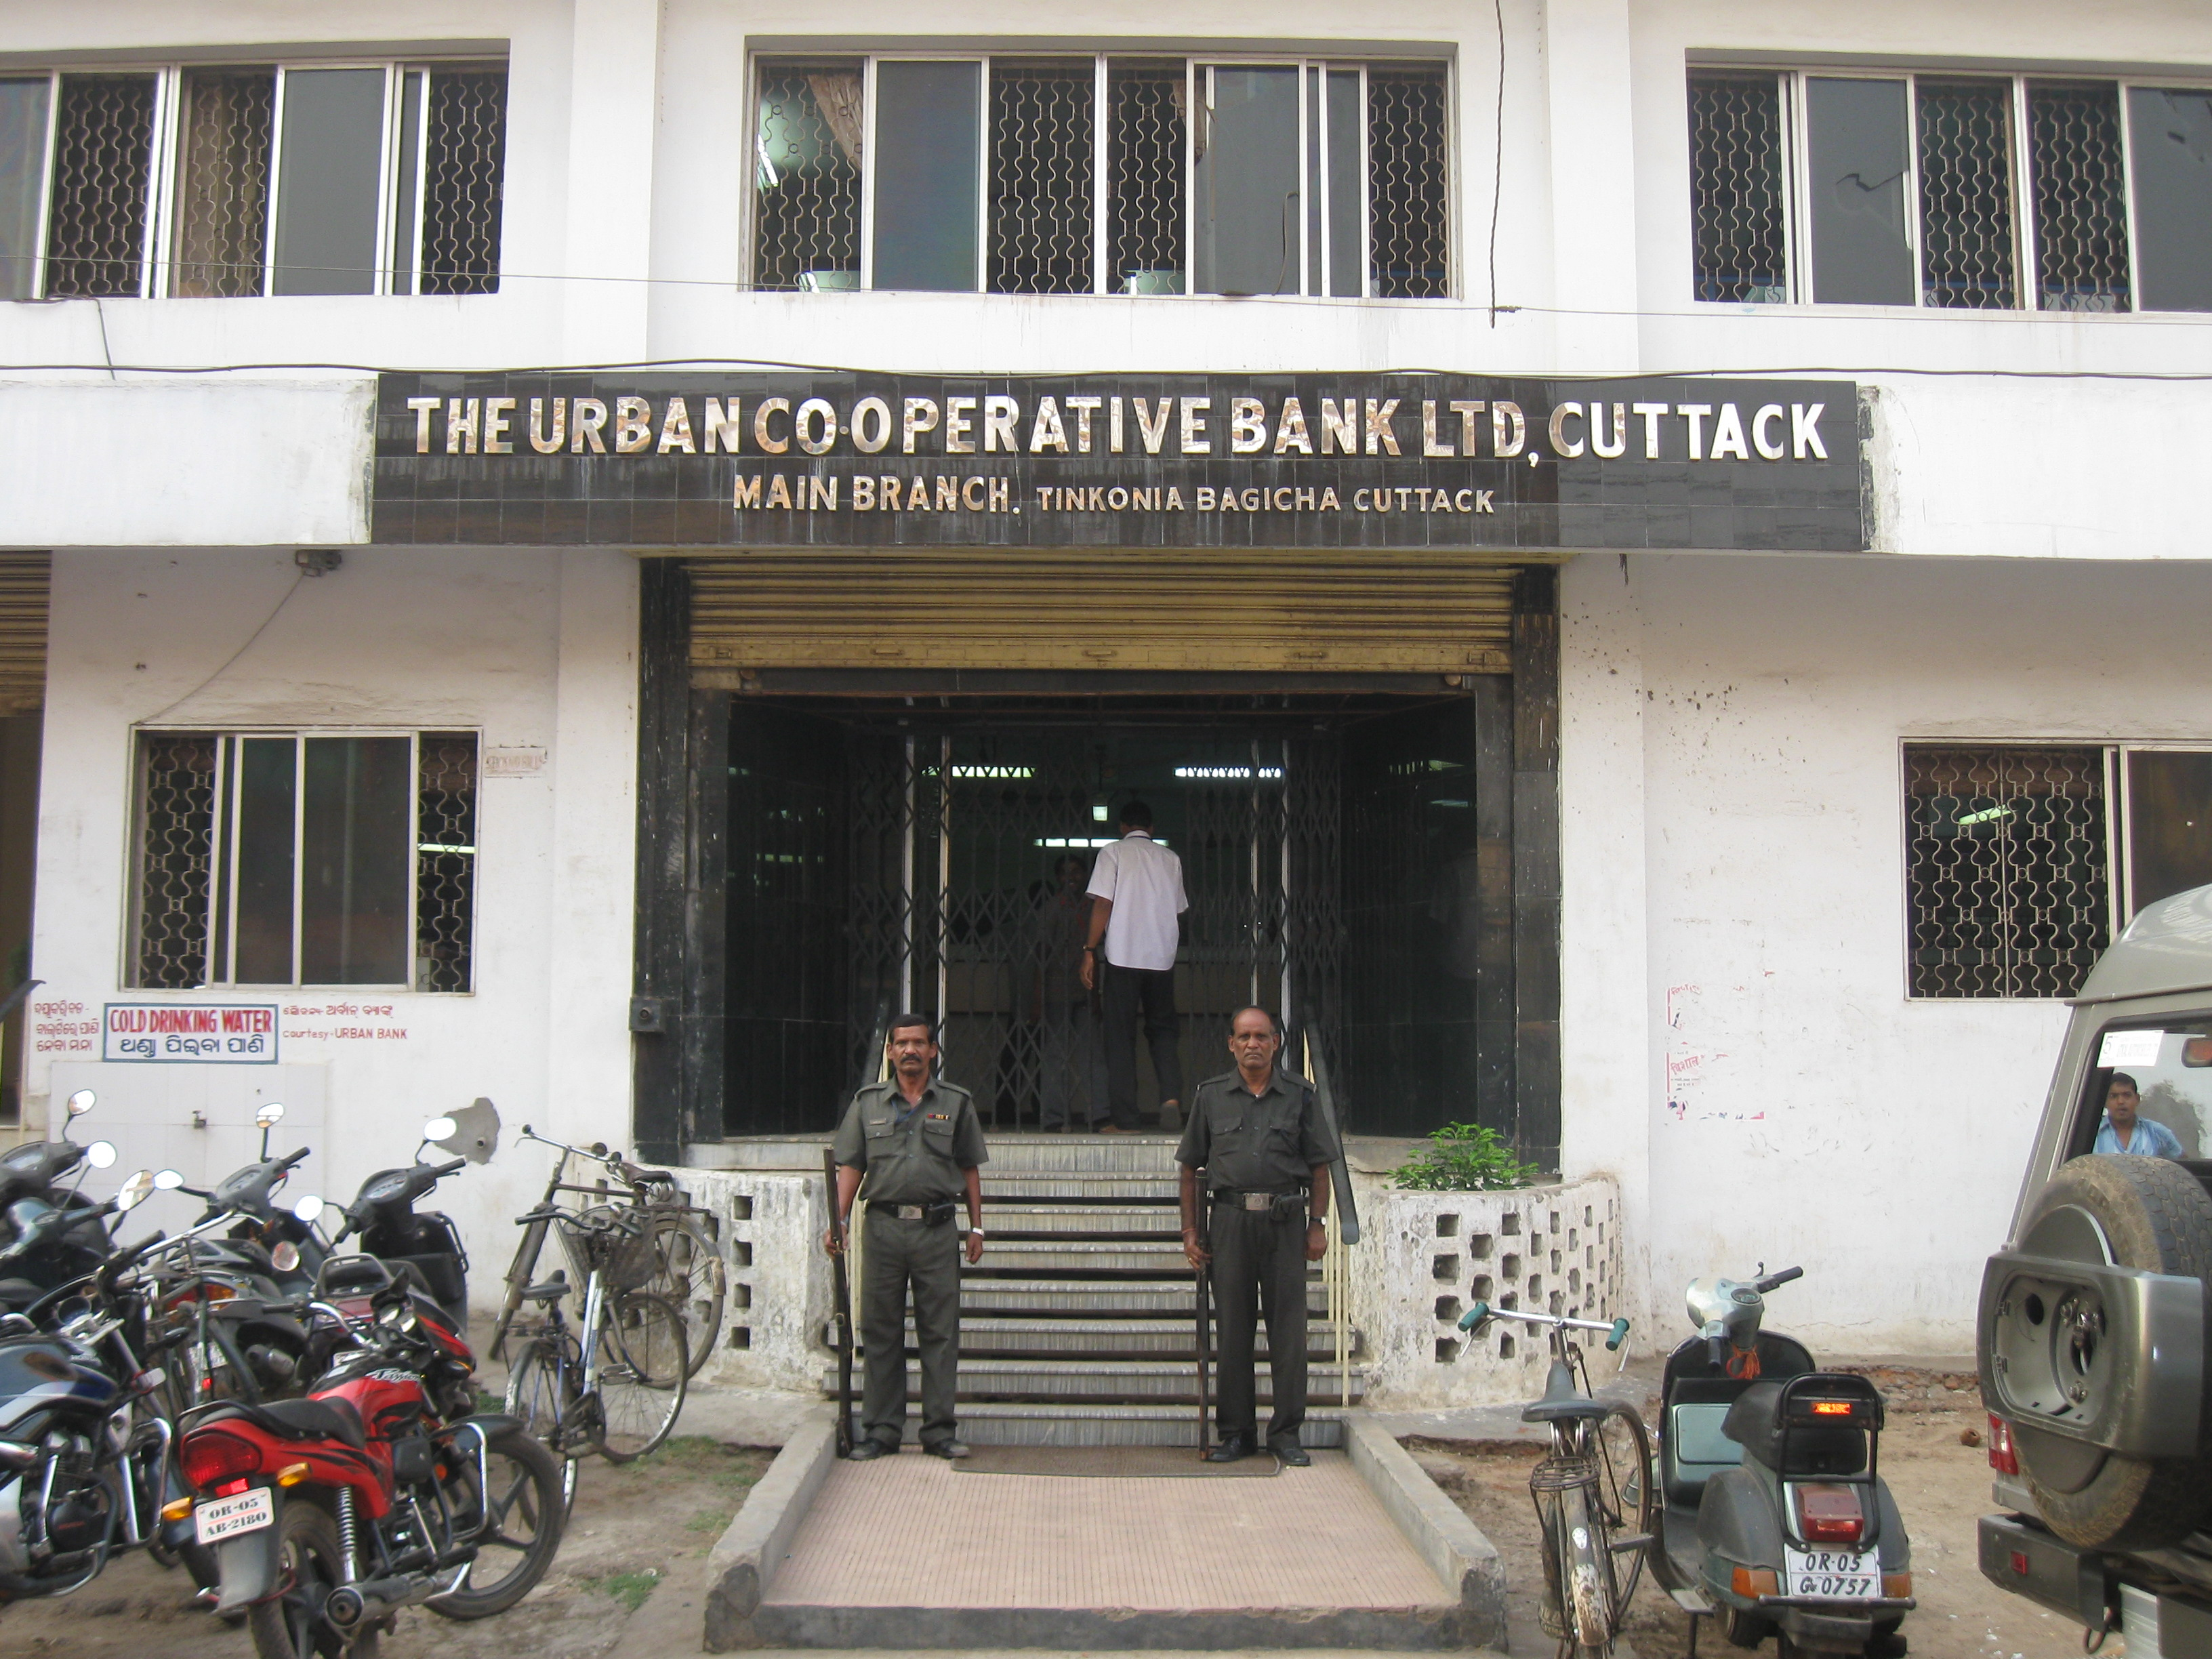 cooperative banks of india Ghanshyambhai h amin was unanimously re-elected as the chairman of cooperative banks of india (cobi) at its headquarters in ncui's campus in delhi on tuesday, in the presence of the who is who of the cooperative world.